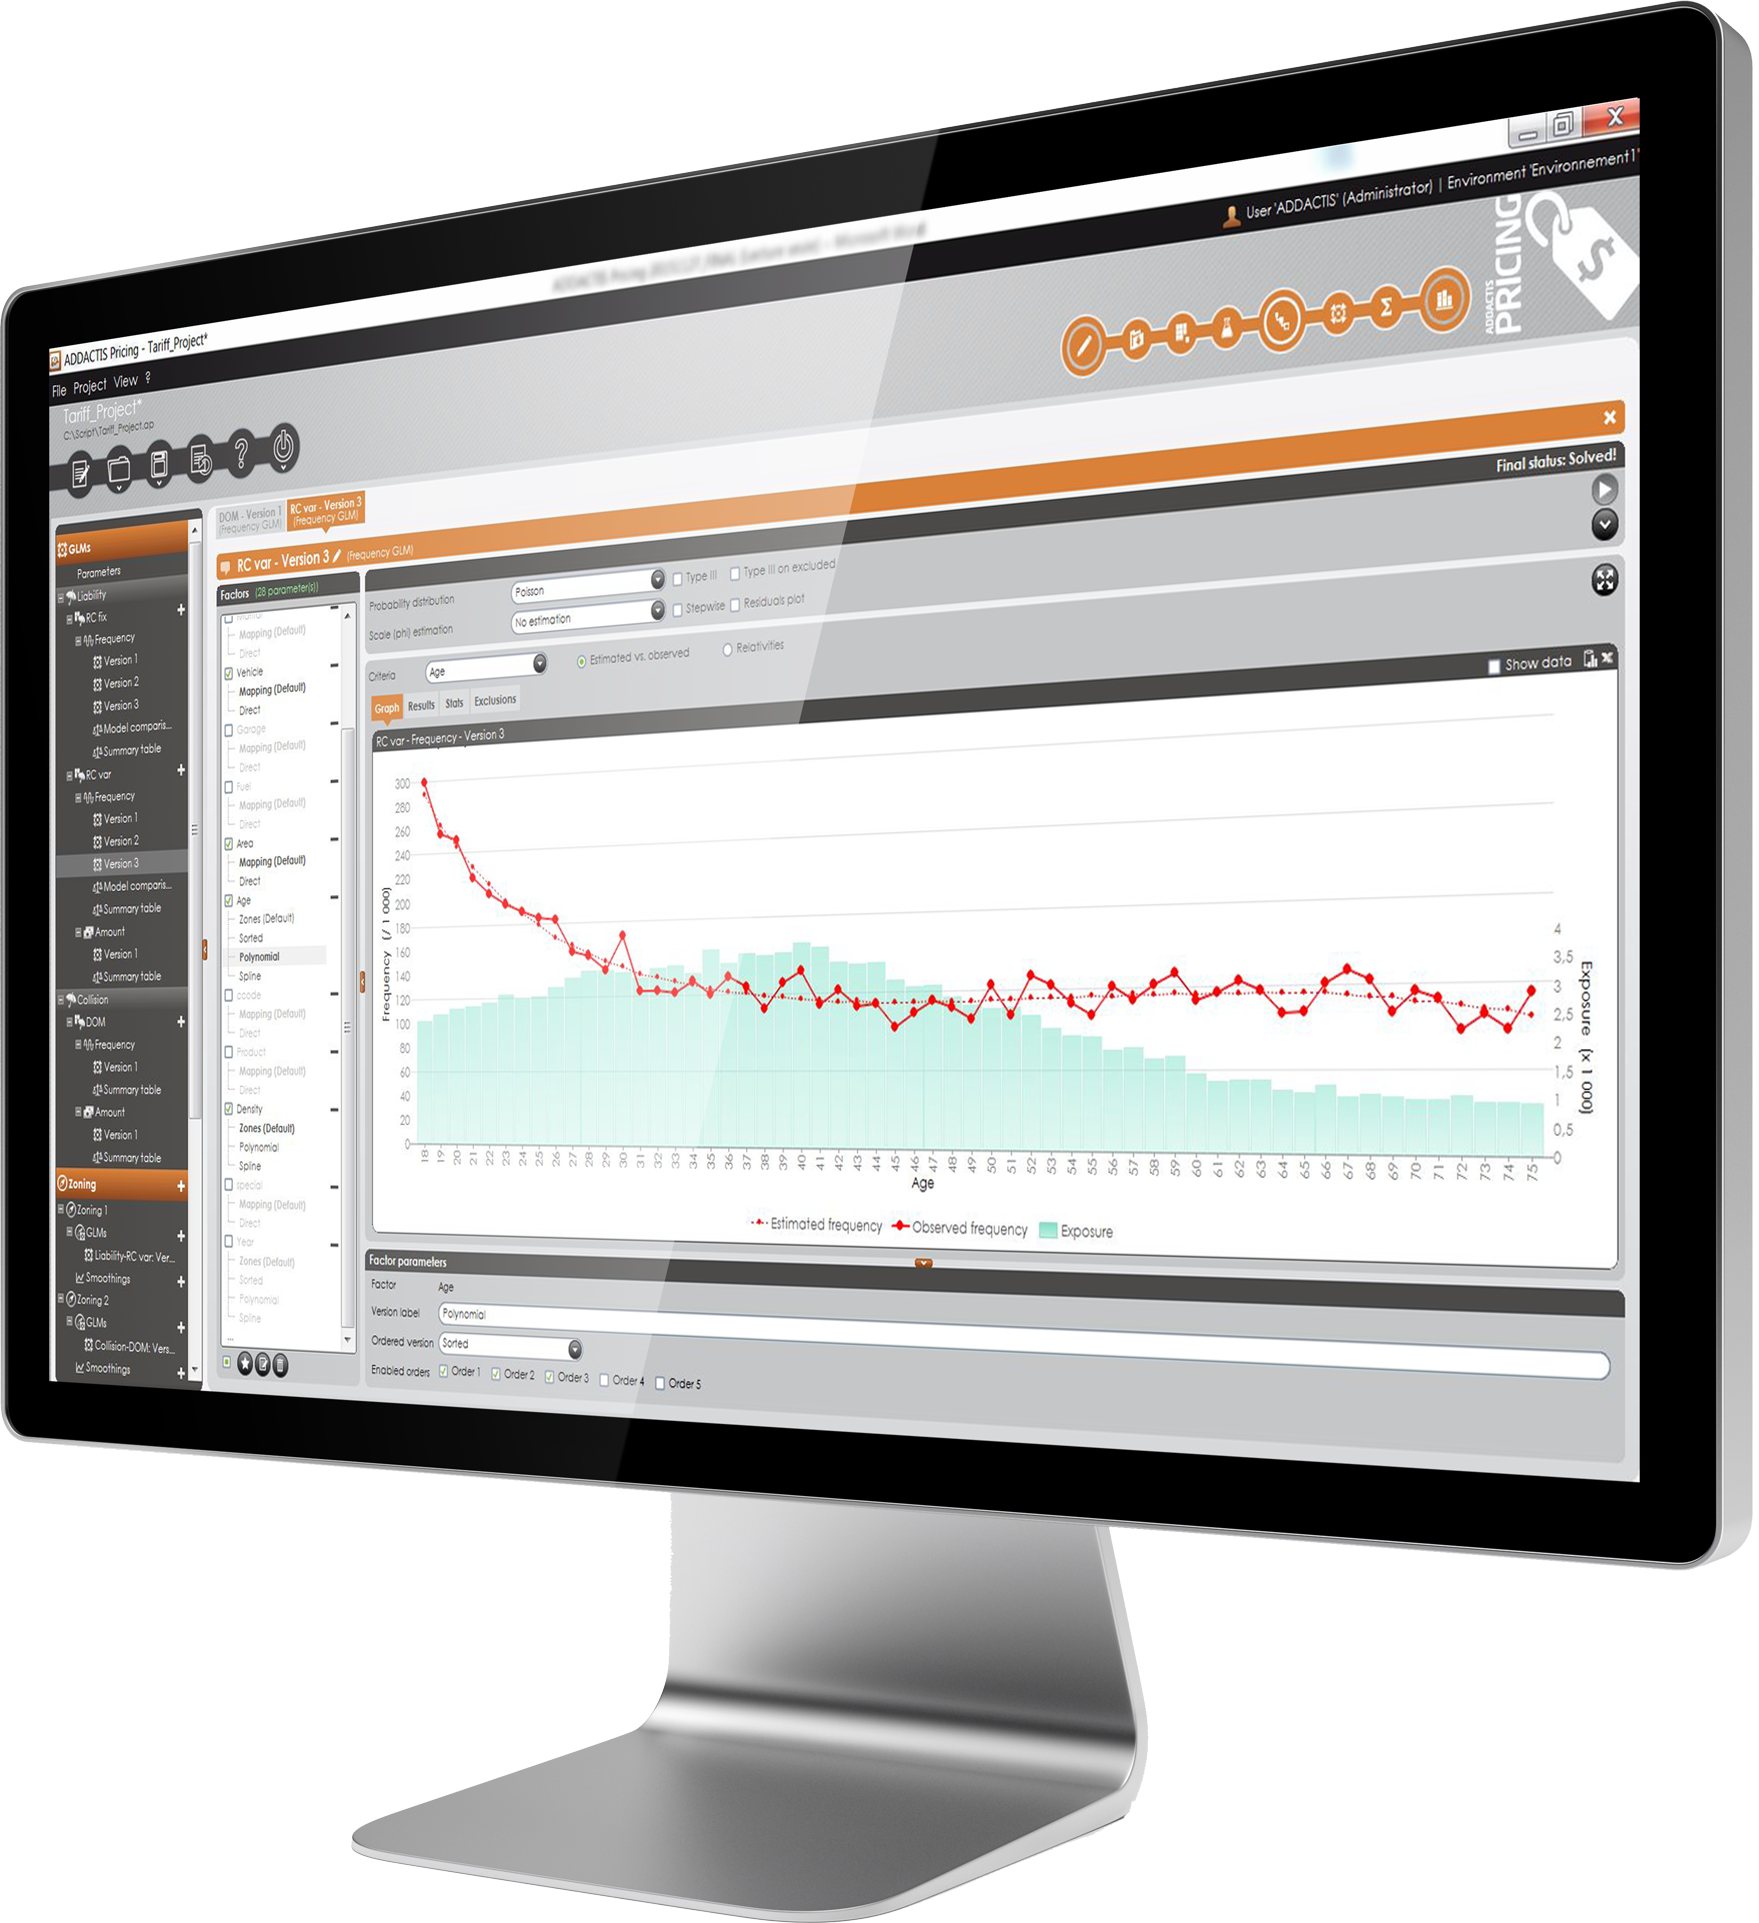 Computeur screen profitability graphic addactis Pricing software